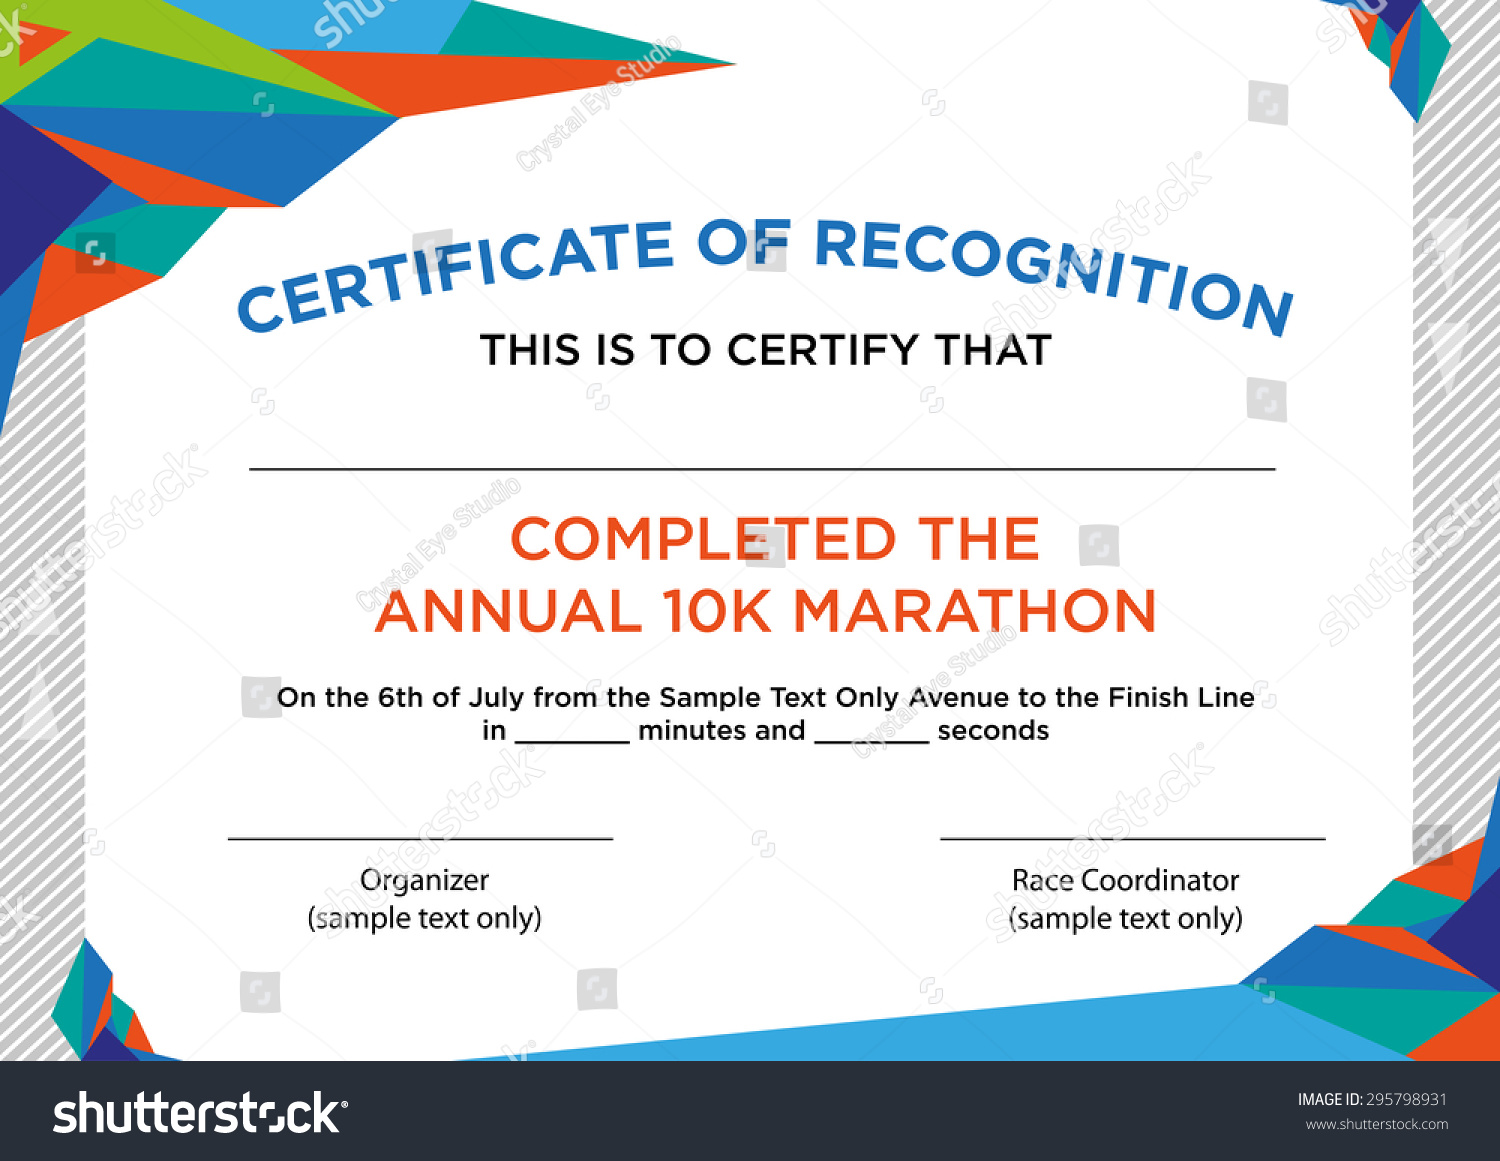 futuristic style certificate of recognition with sample text editable clip art